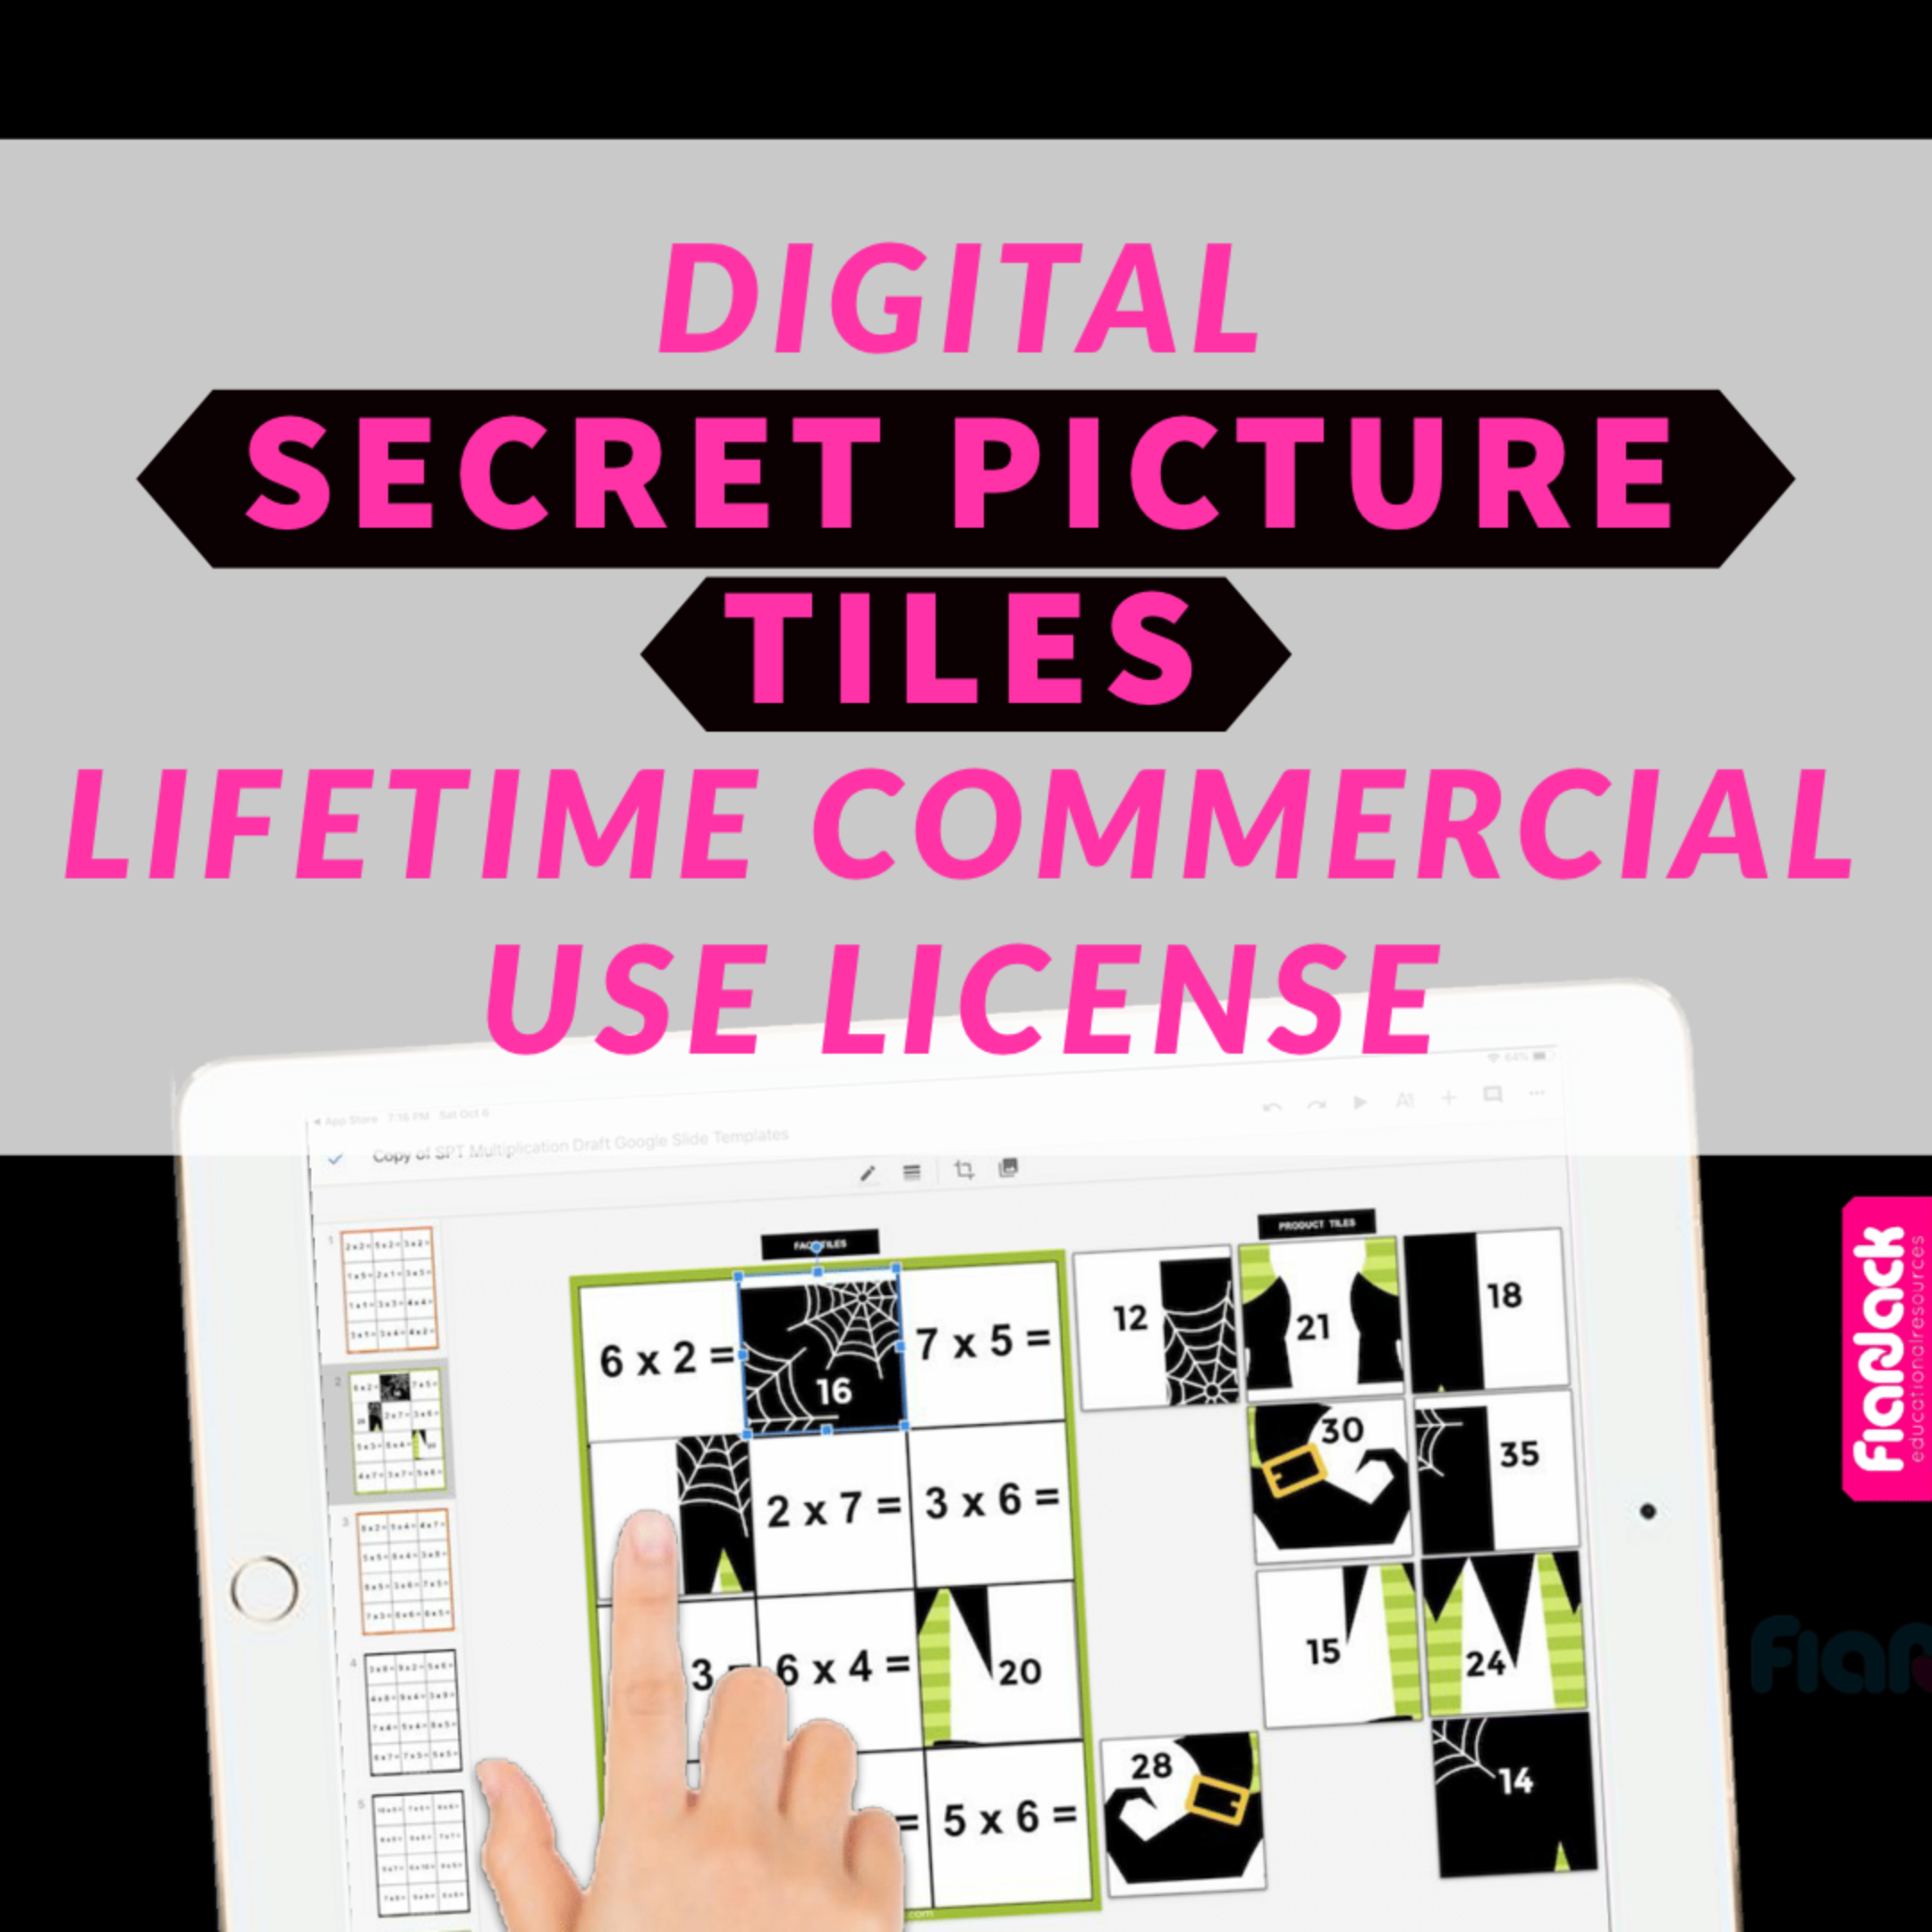 Digital Secret Picture Tiles Lifetime Commercial Use License